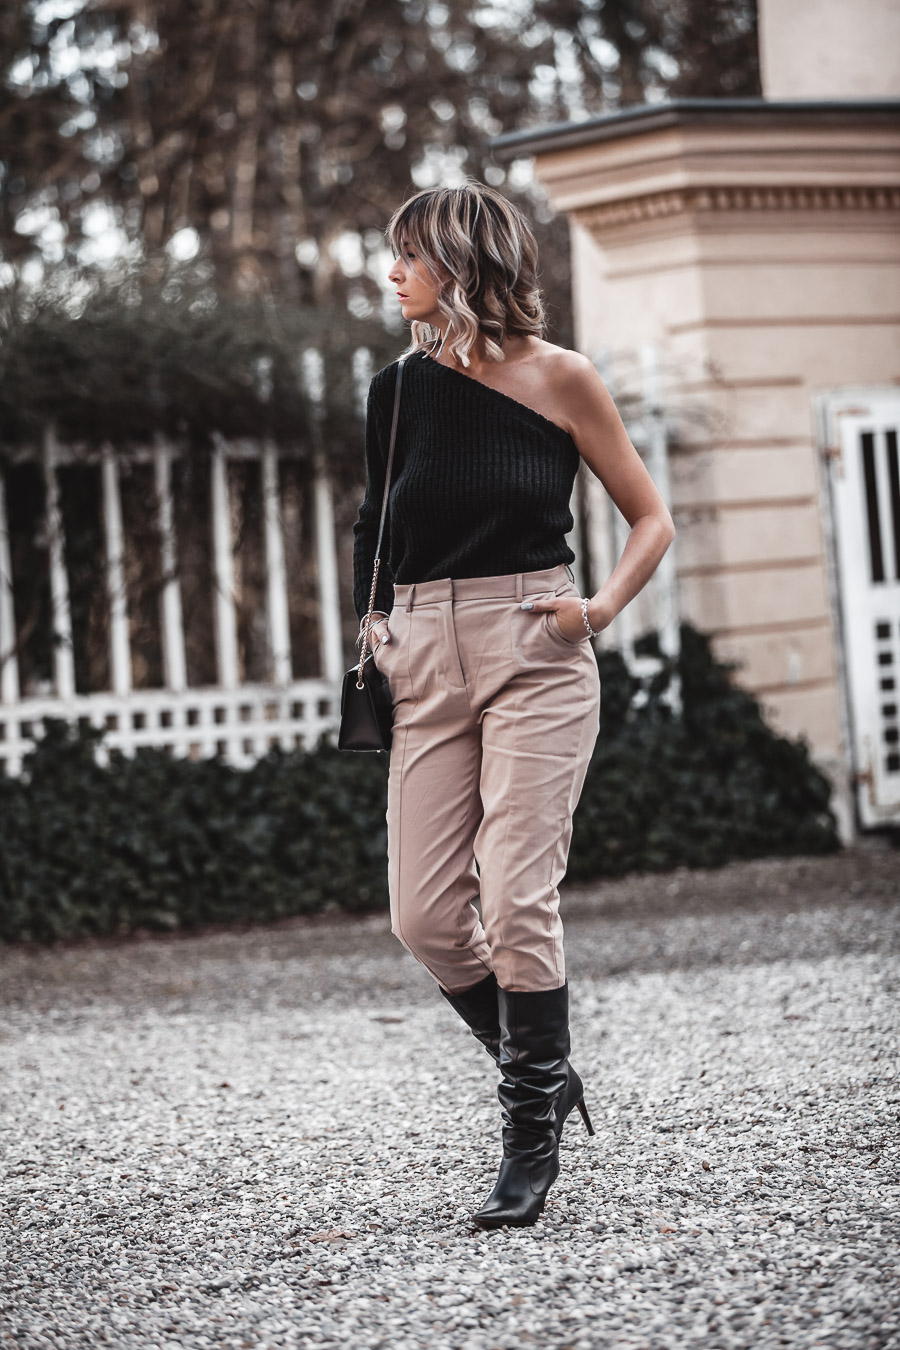 Three Key Pieces To Add To Your Wardrobe Right Now - www.jennysgou.com - Beige suit pants, slouchy boots